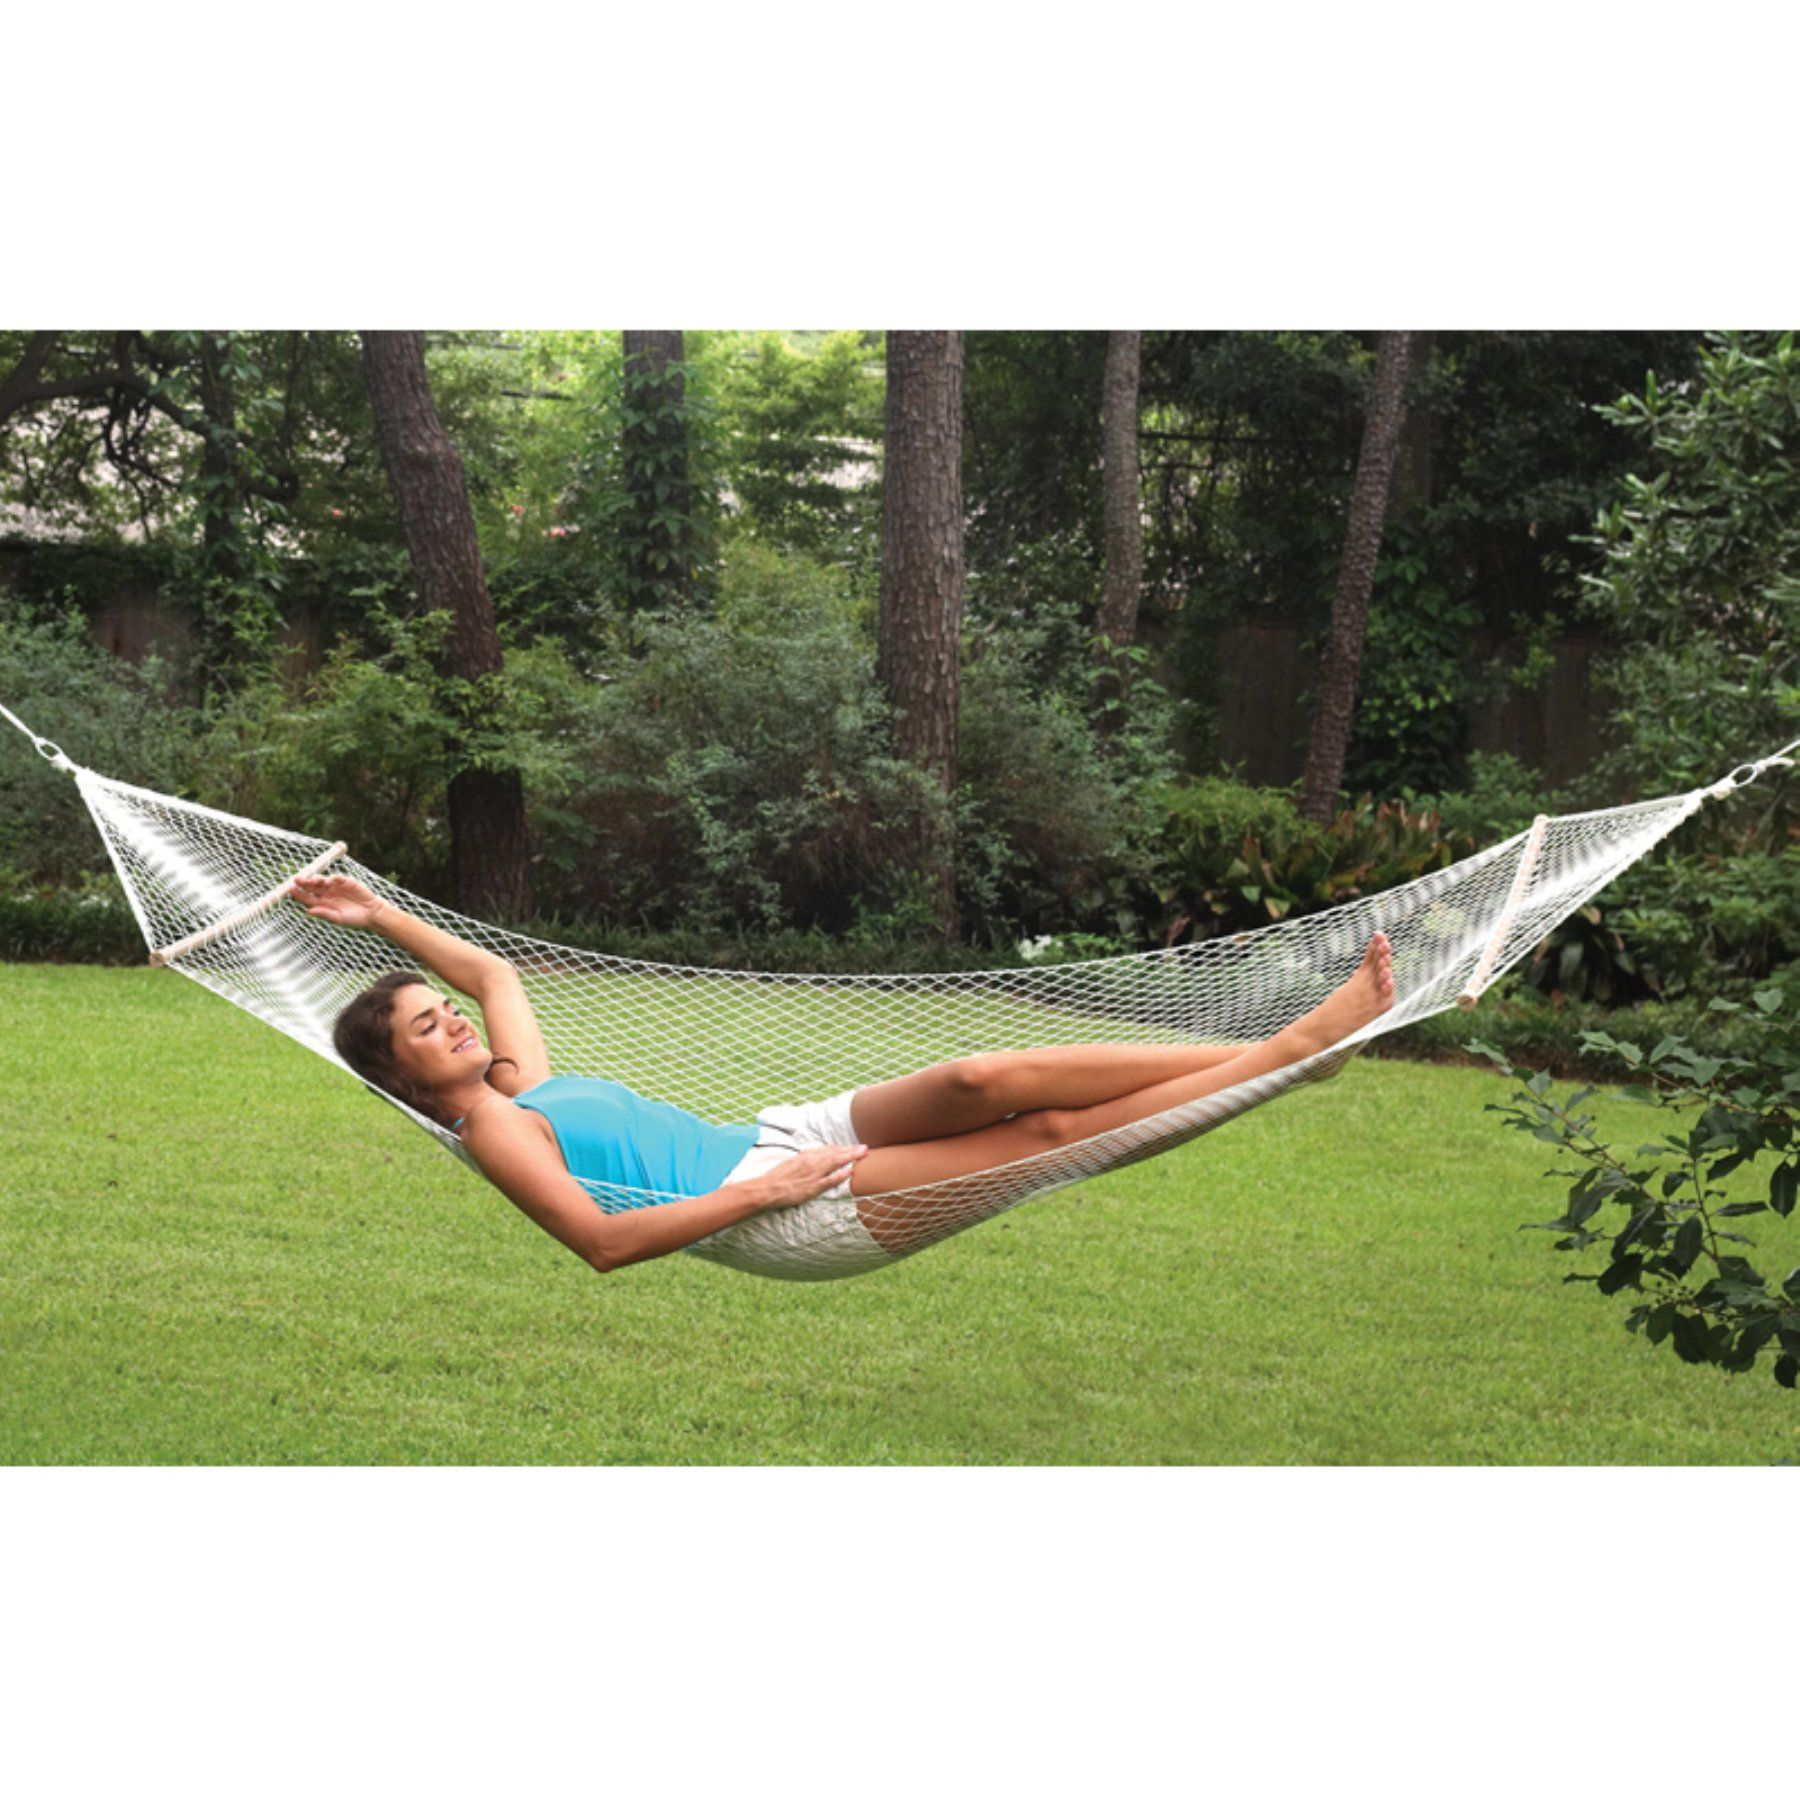 home stand hammock patio forest hammocks softweave green products large weave xx with hatteras woven soft pawleys quilted island